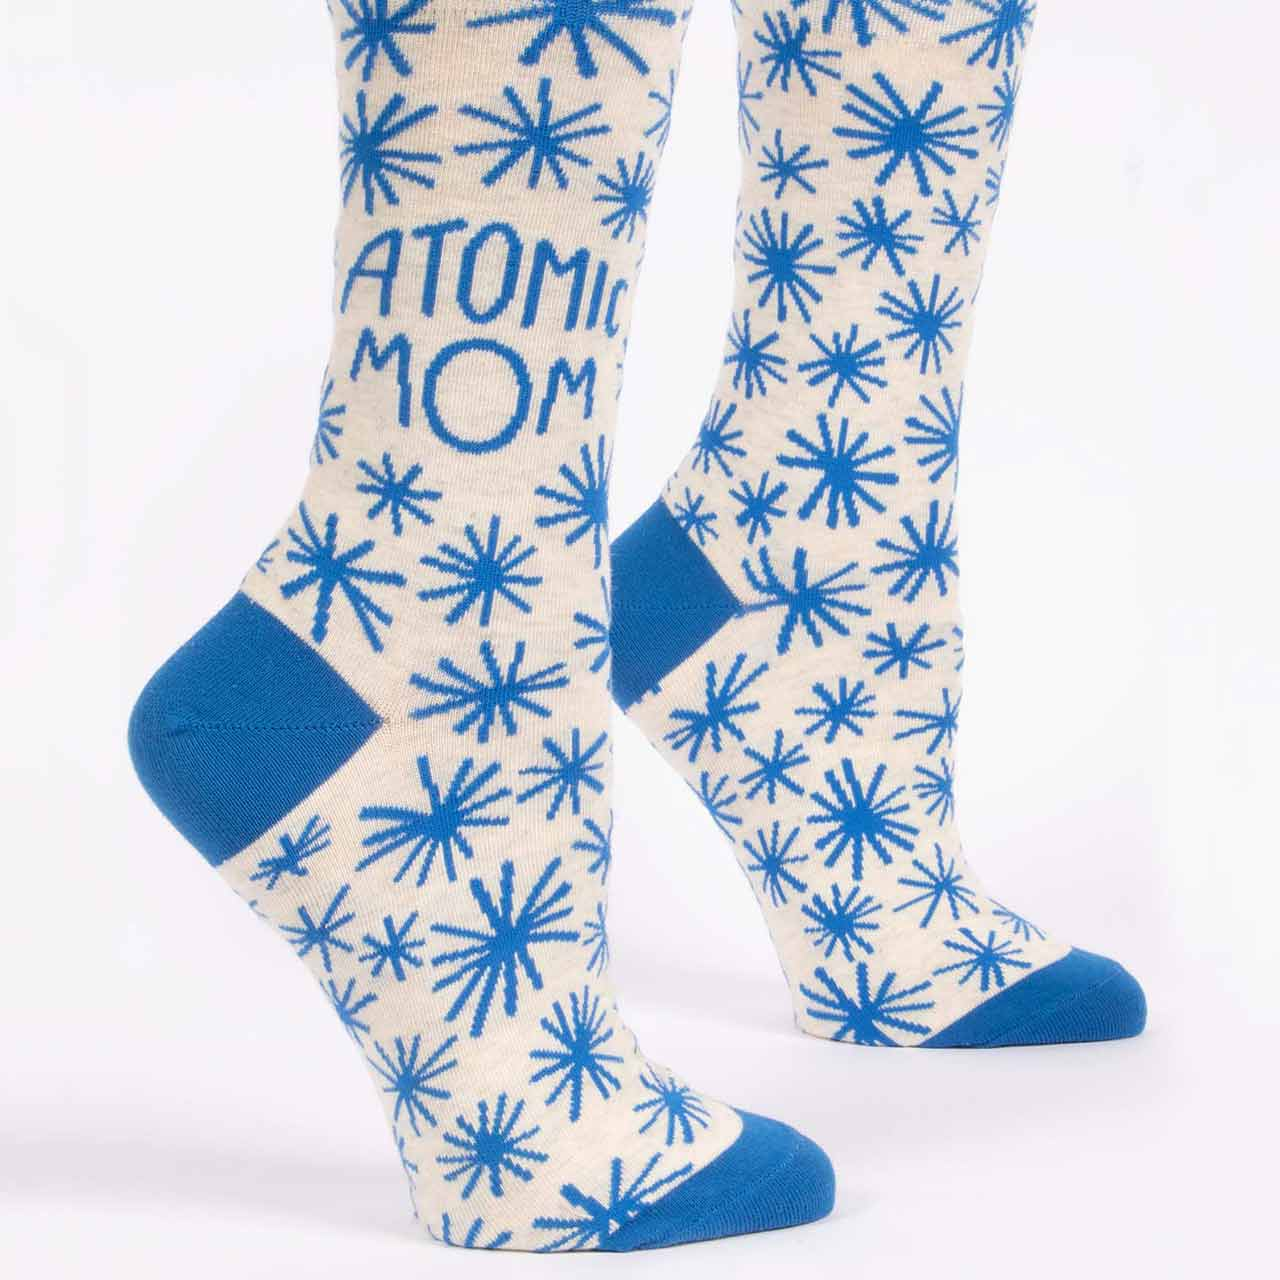 Blue Q Women's Socks 'Atomic Mom' | the design gift shop